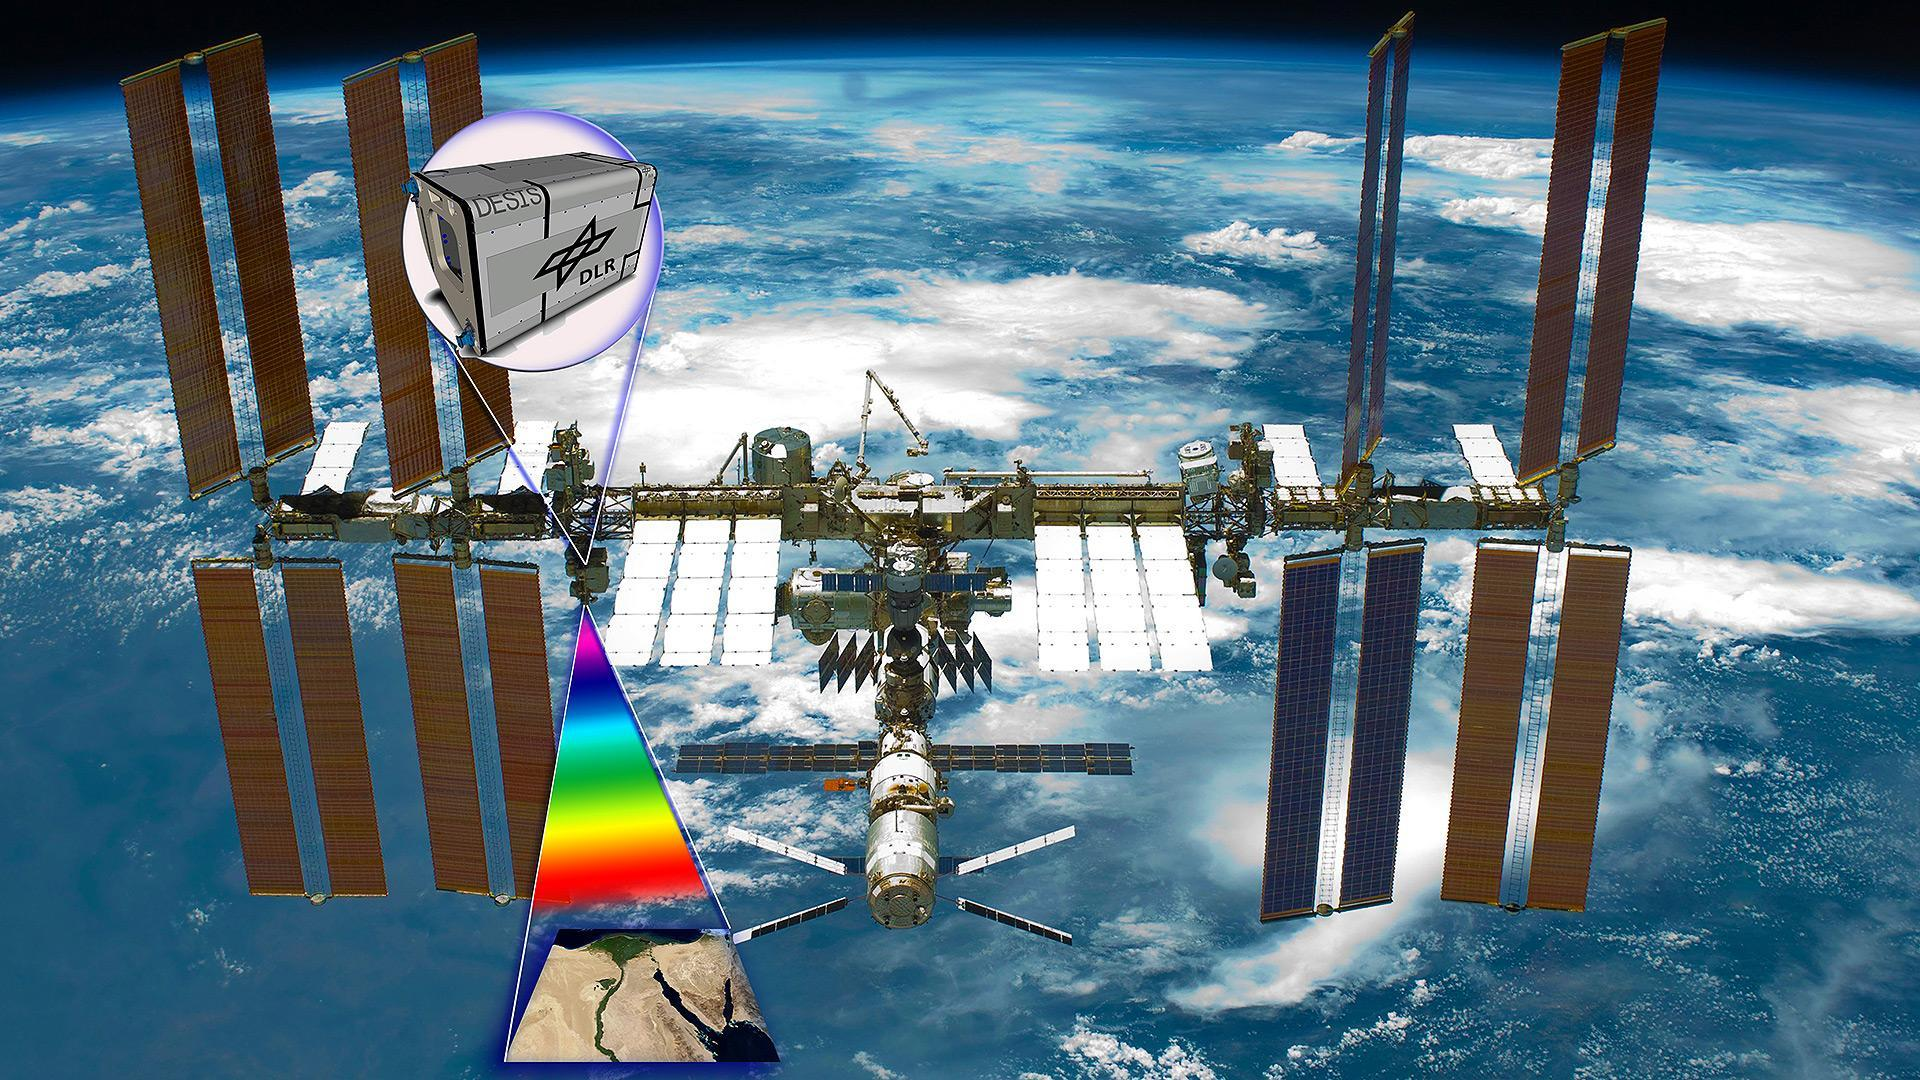 Artist's impression of DESIS on the ISS